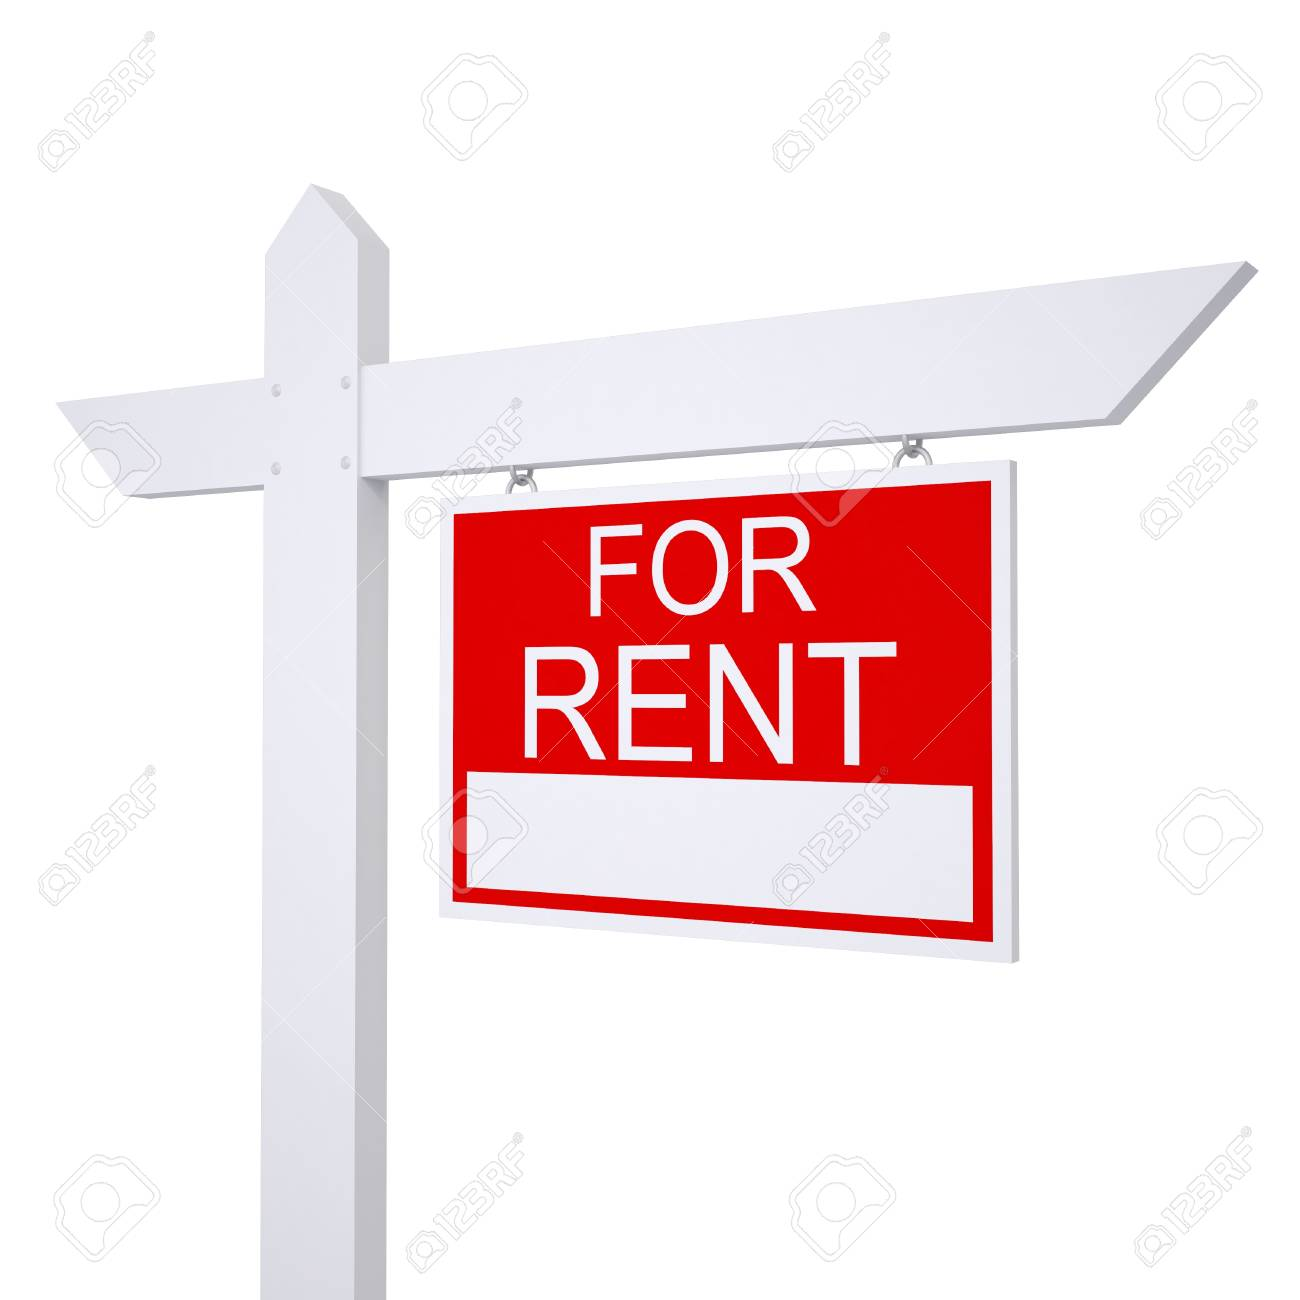 Real estate for rent sign  Isolated render on white background Stock Photo - 21484744